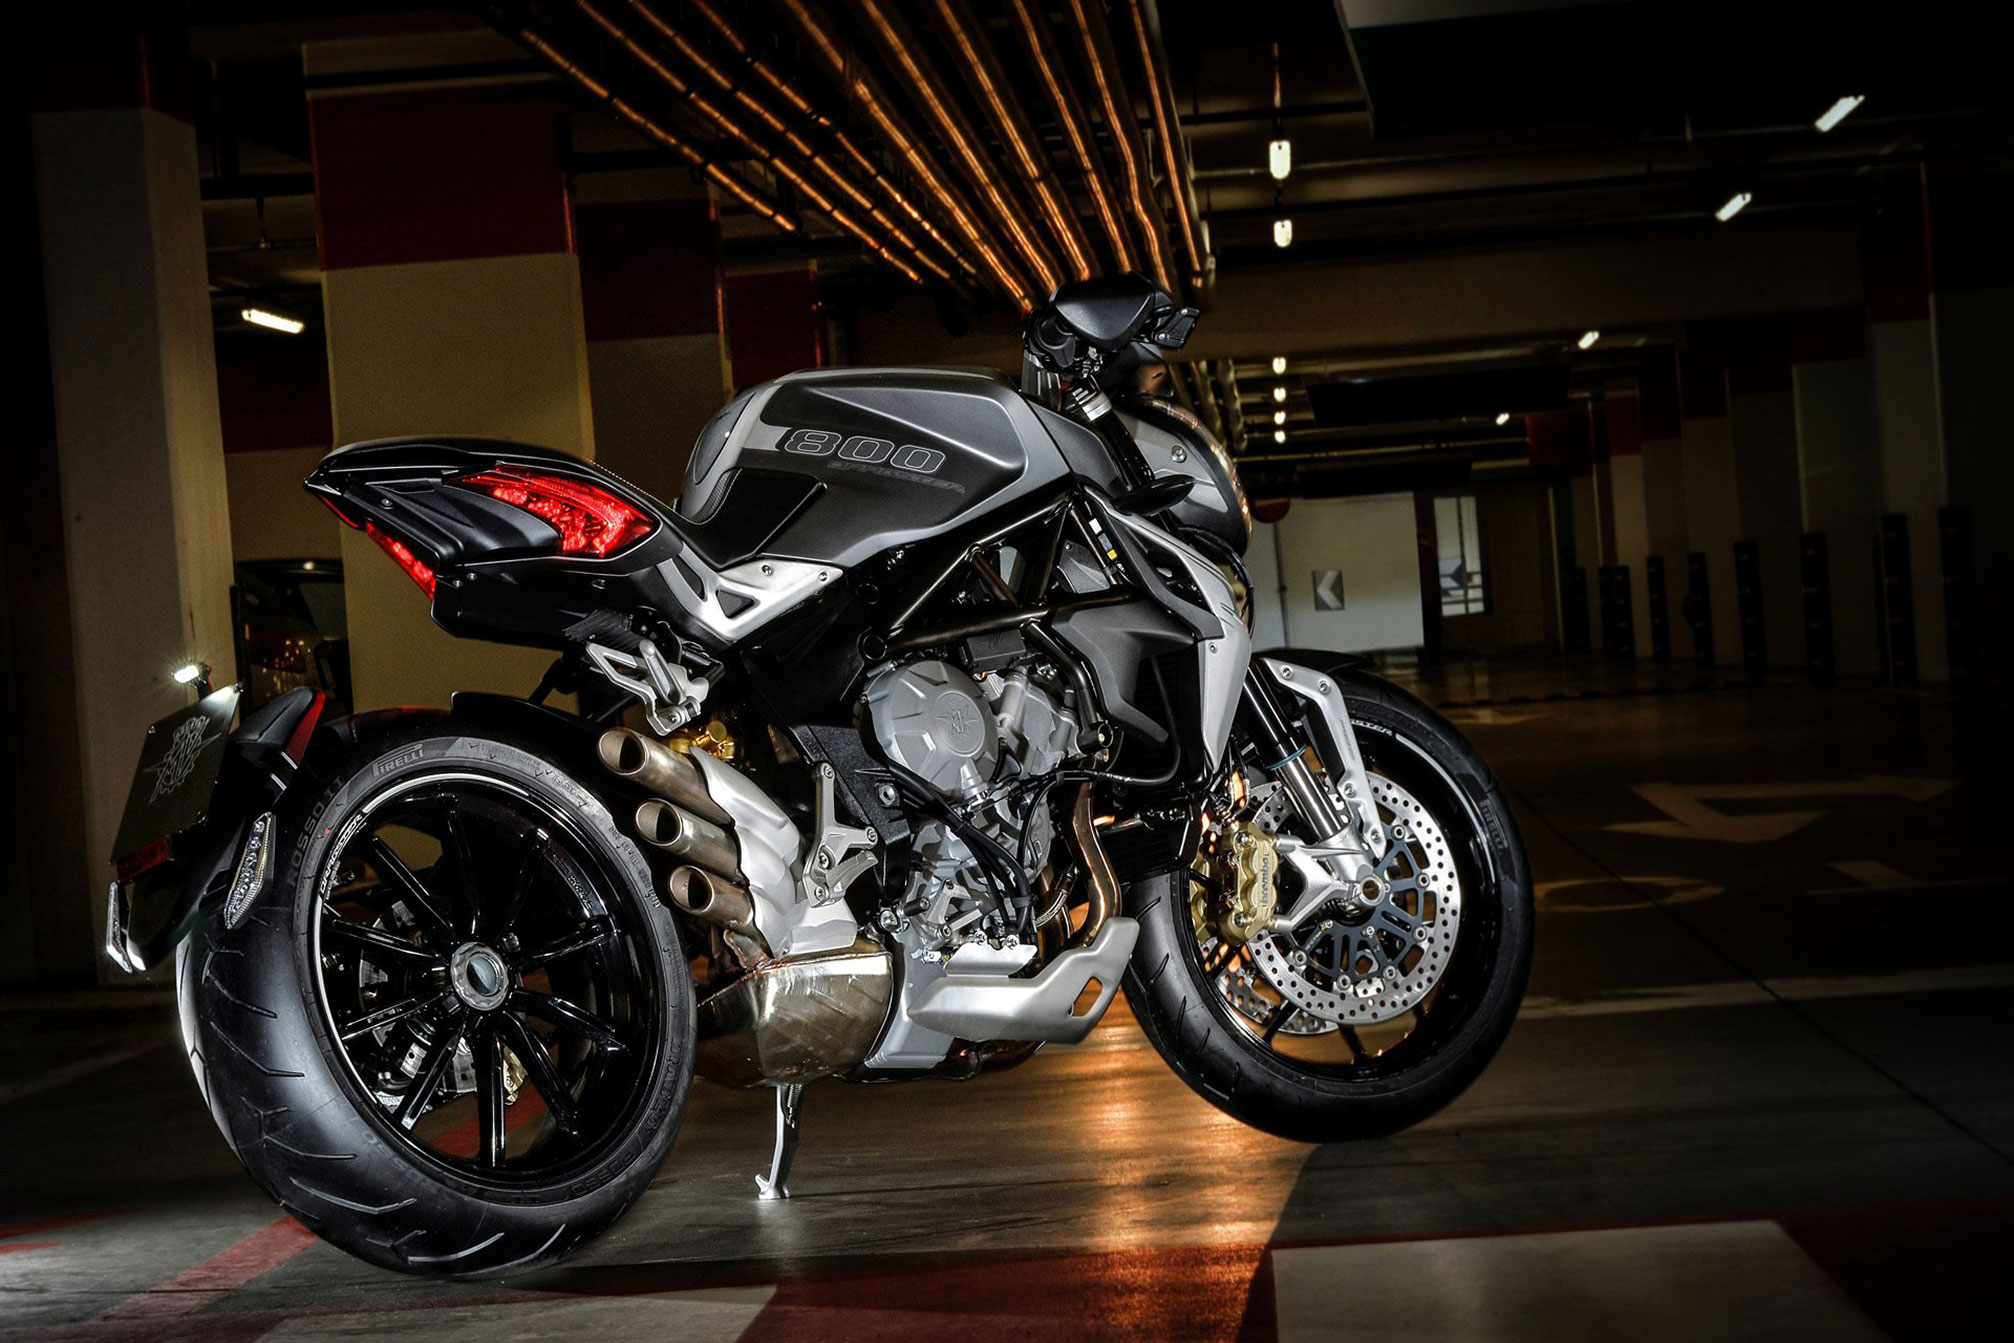 2014 MV Agusta Brutale 800 Dragster Review